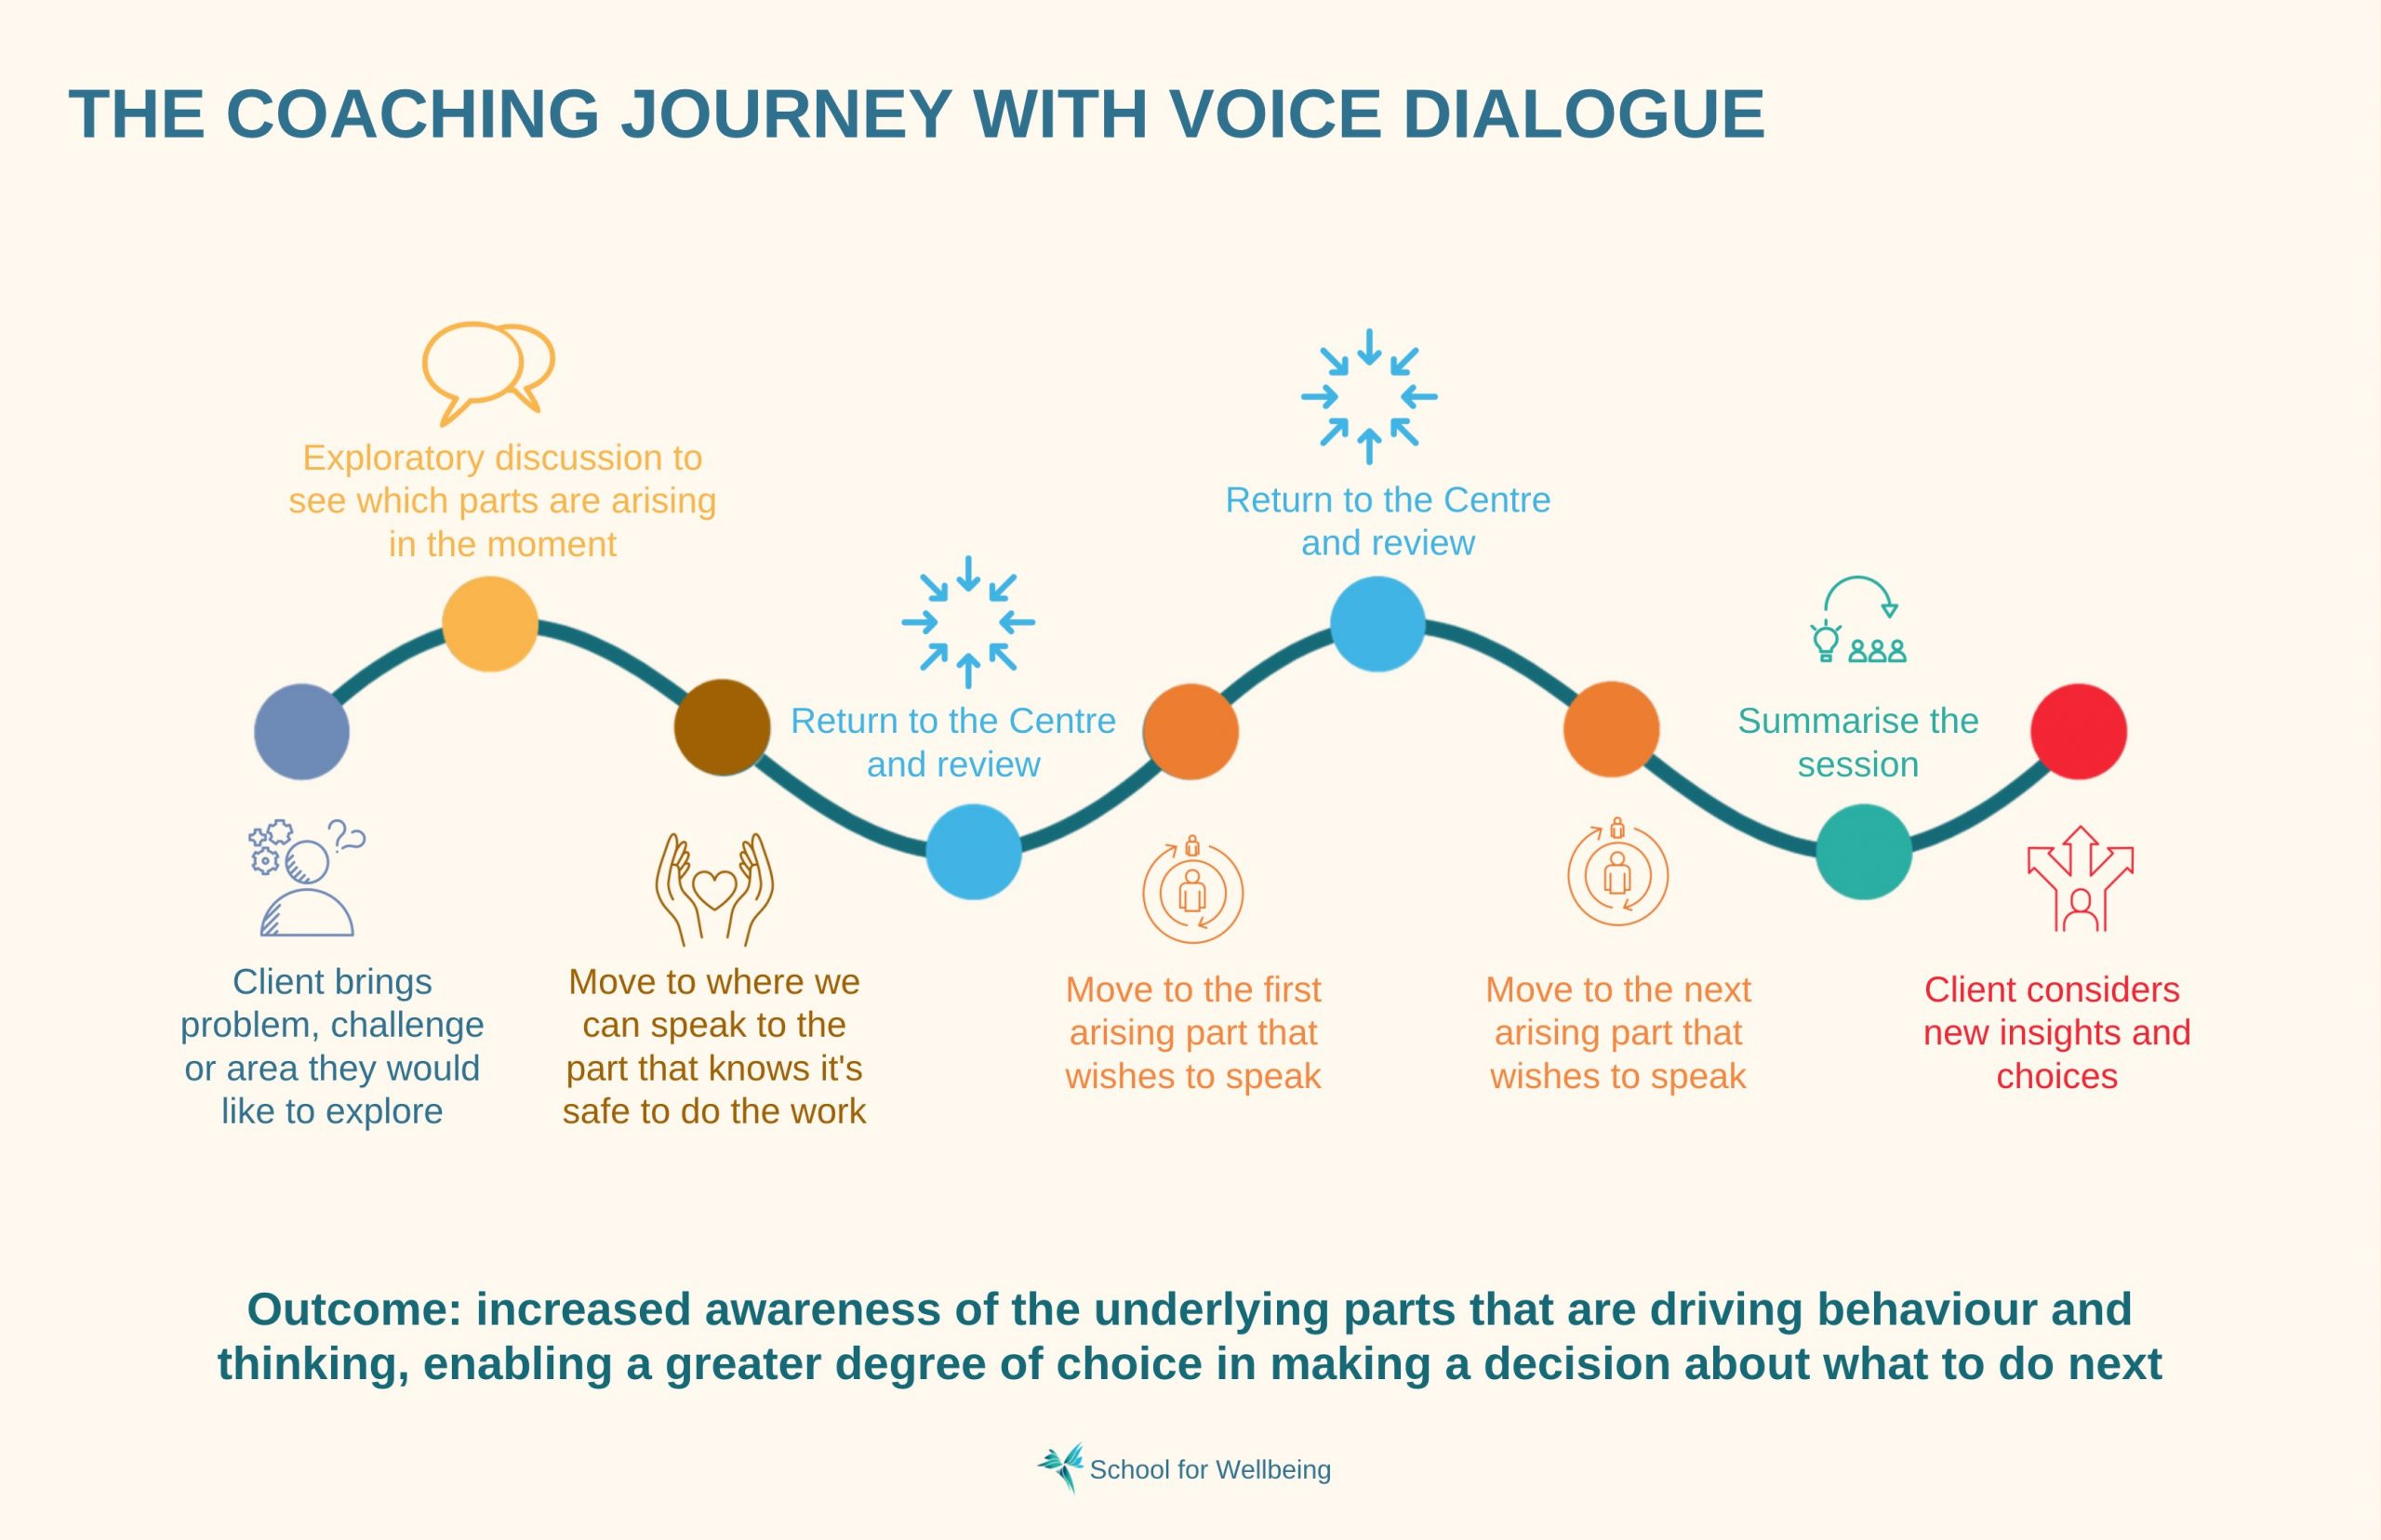 The Coaching journey with voice dialogue